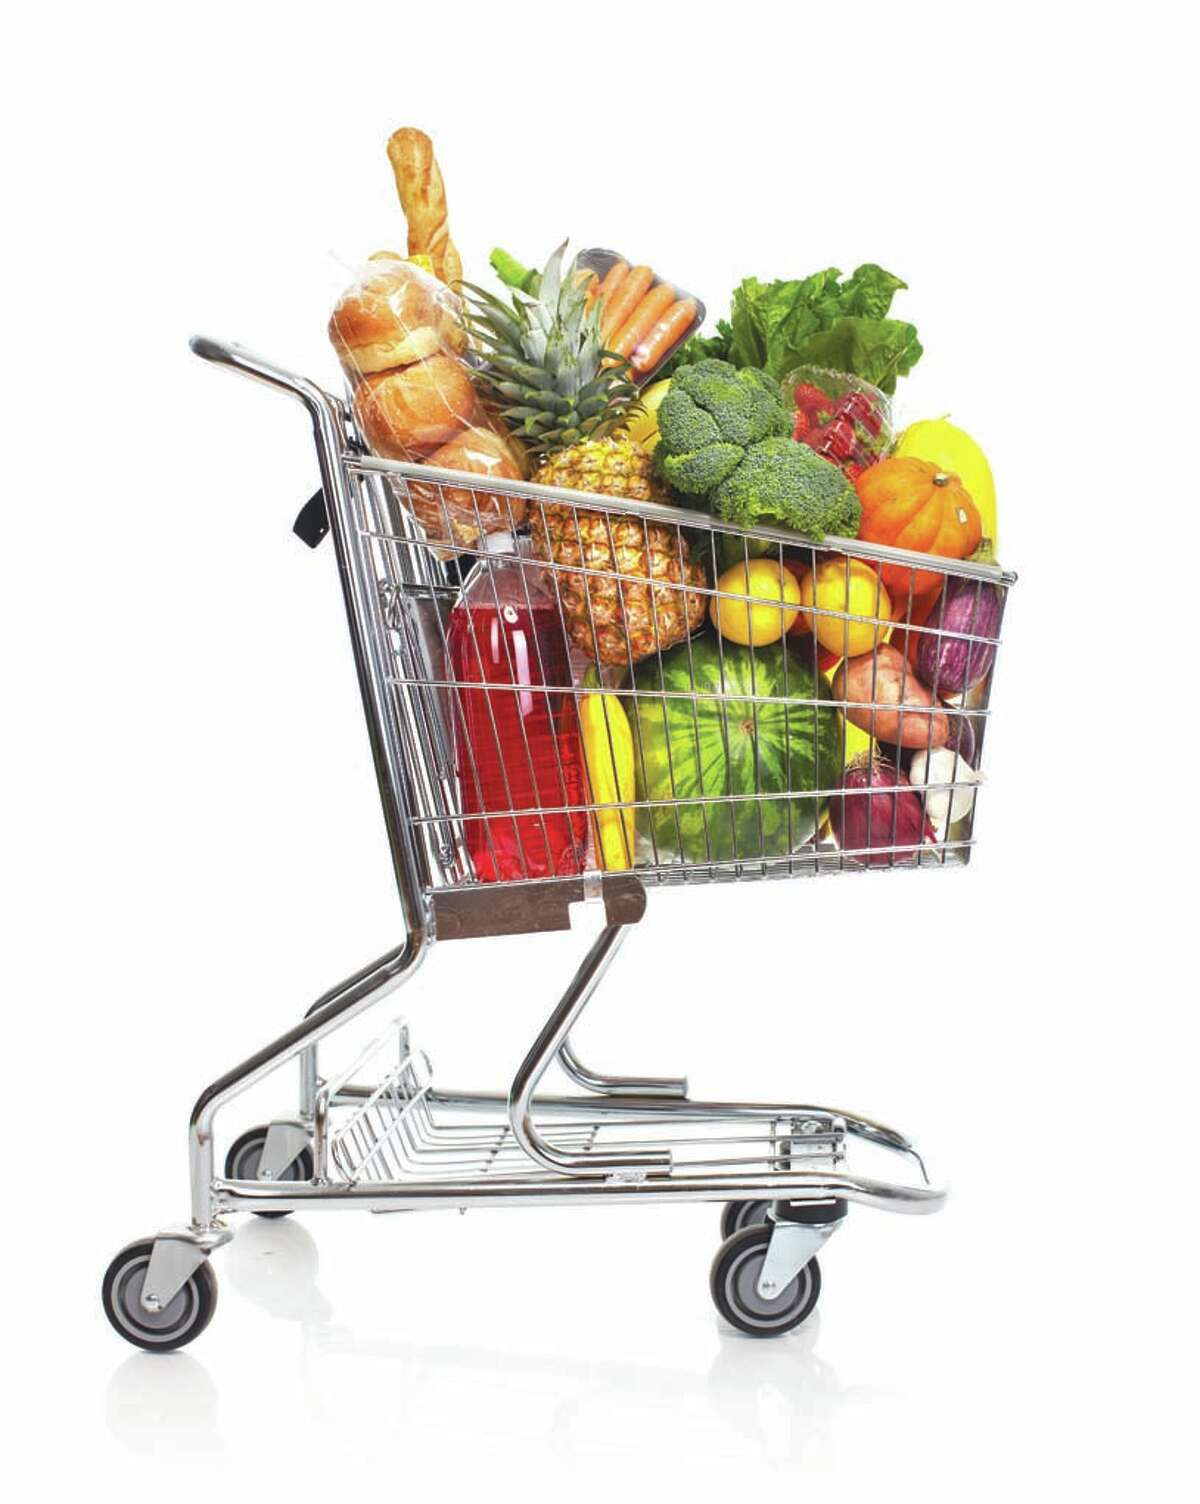 Make healthy swaps at the grocery store (Fotolia)